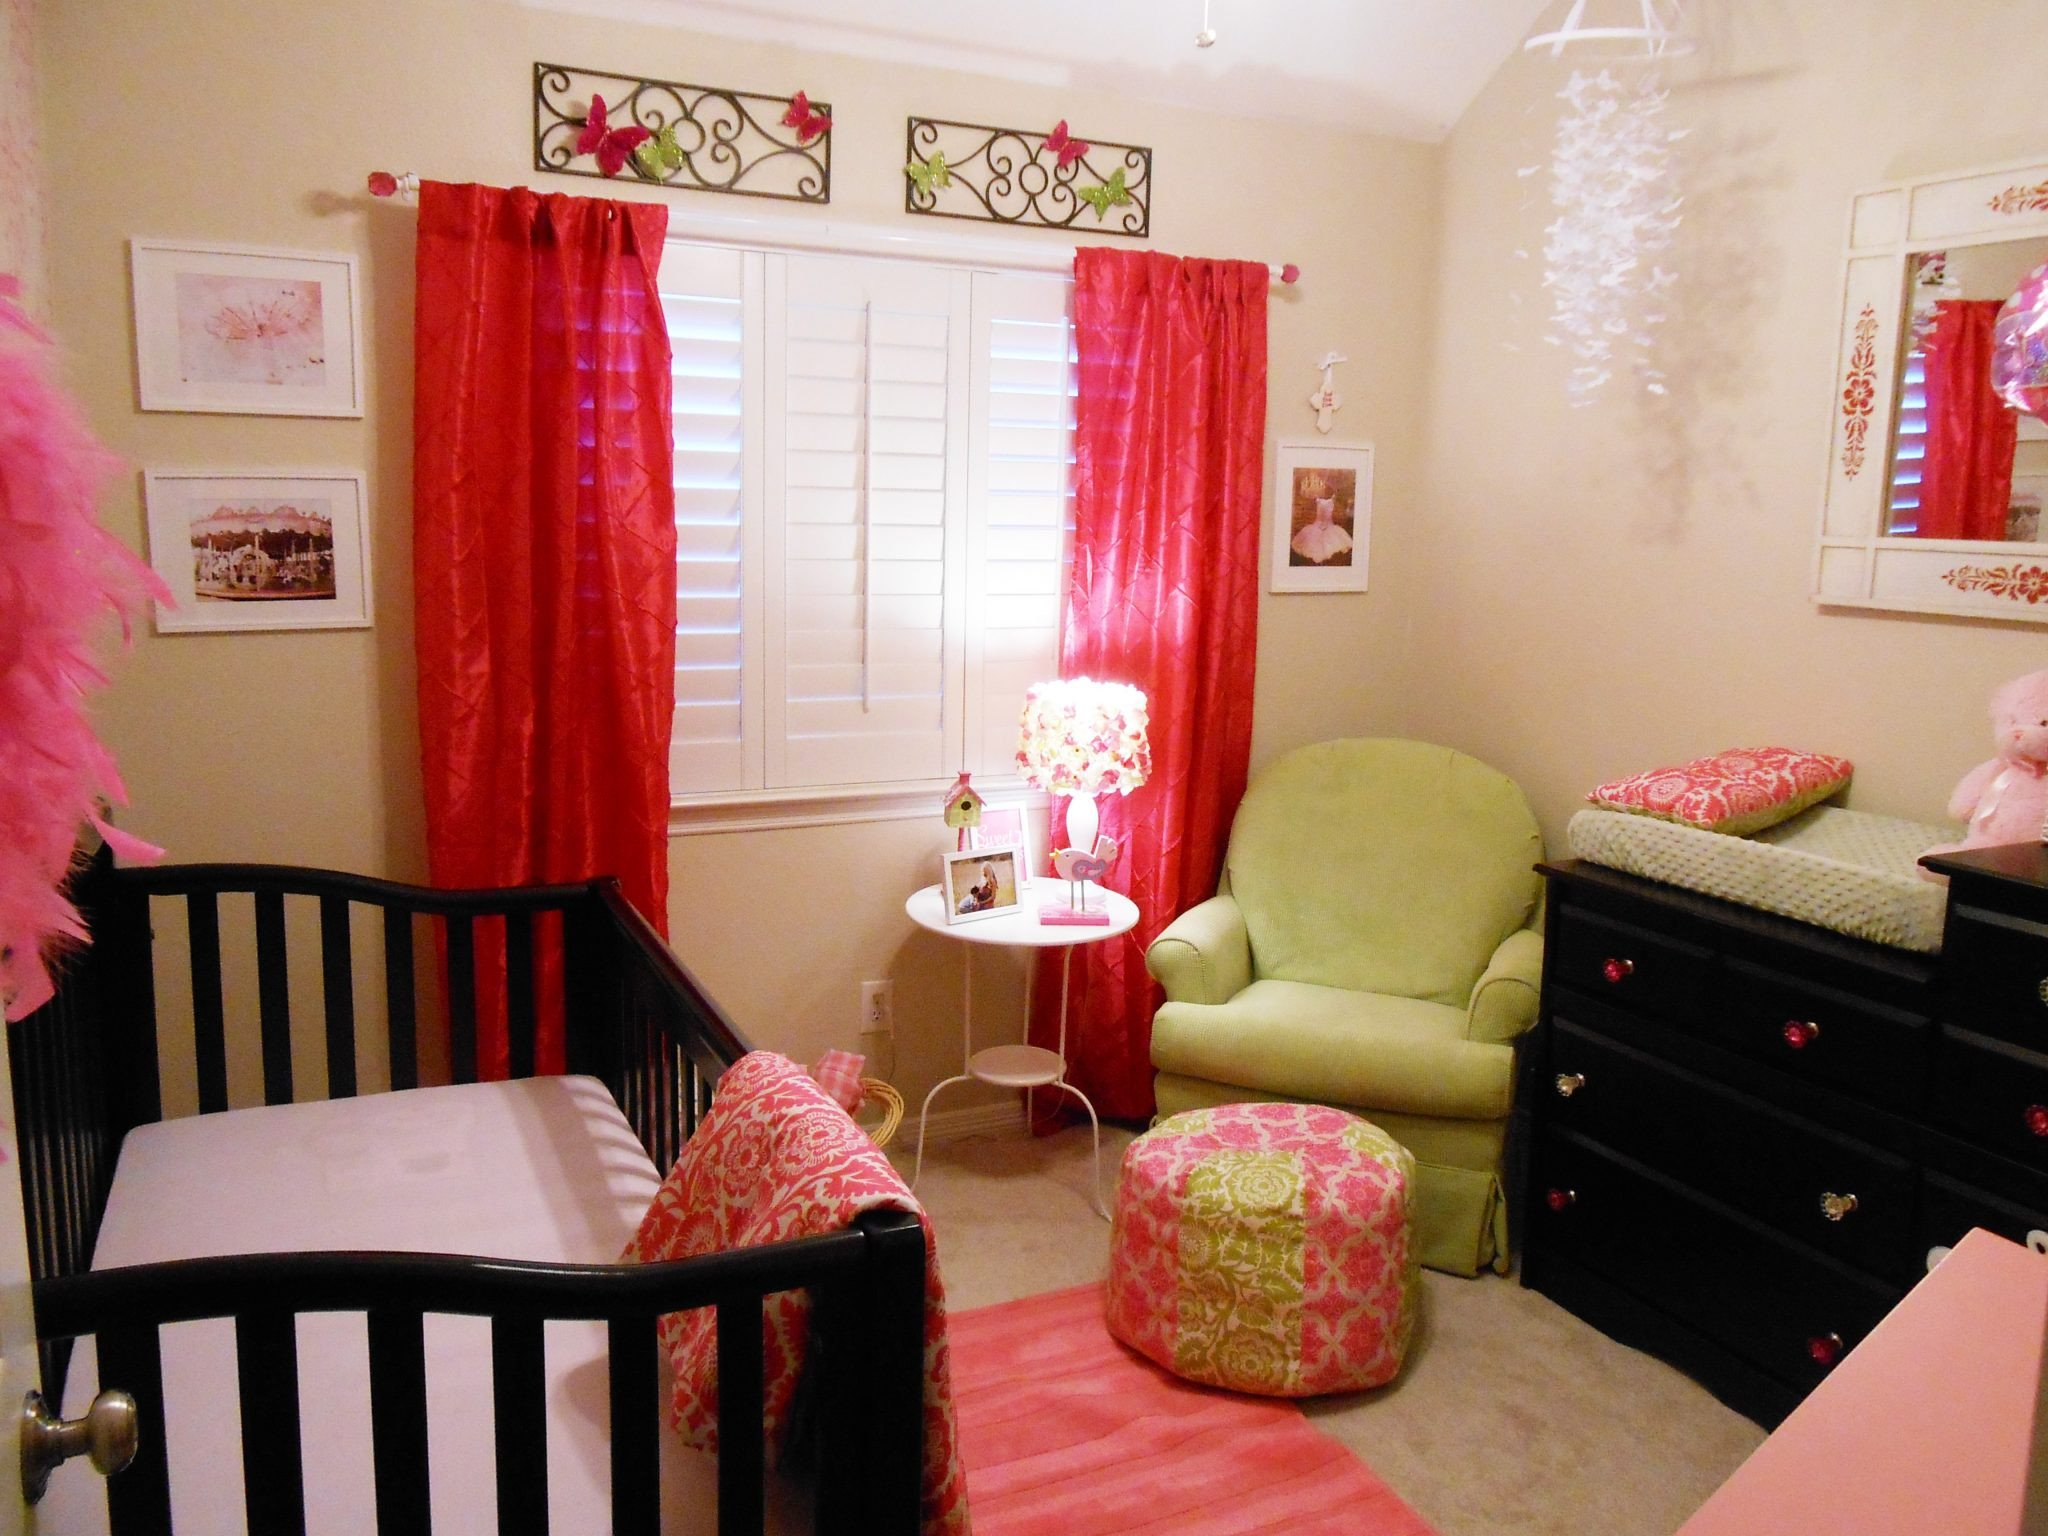 Toddler Girl Room Decor Ideas Fresh Striking Tips On Decorating Room for toddler Girls